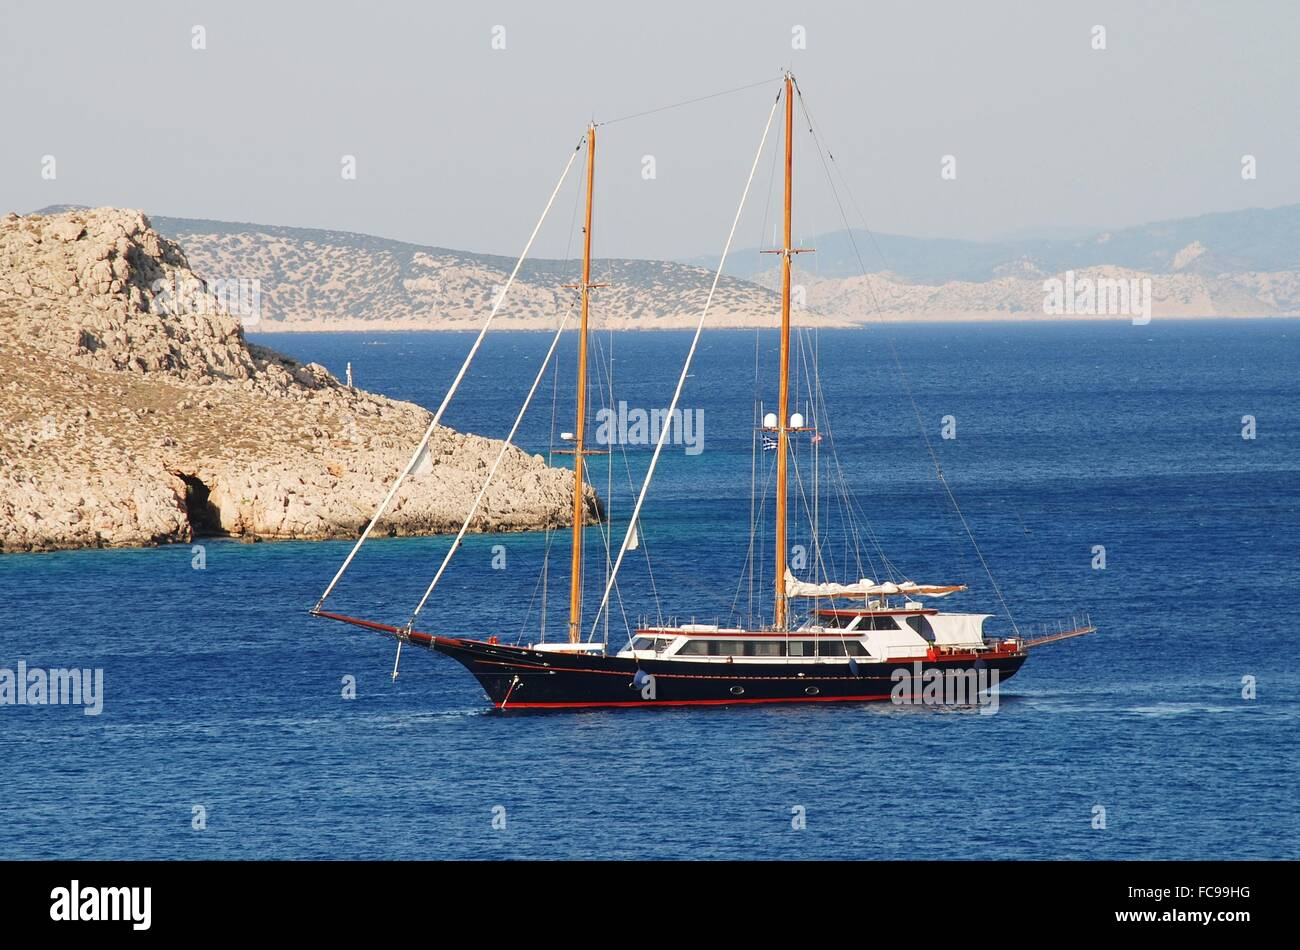 A twin masted yacht entering Emborio harbour on the Greek island of Halki. Stock Photo